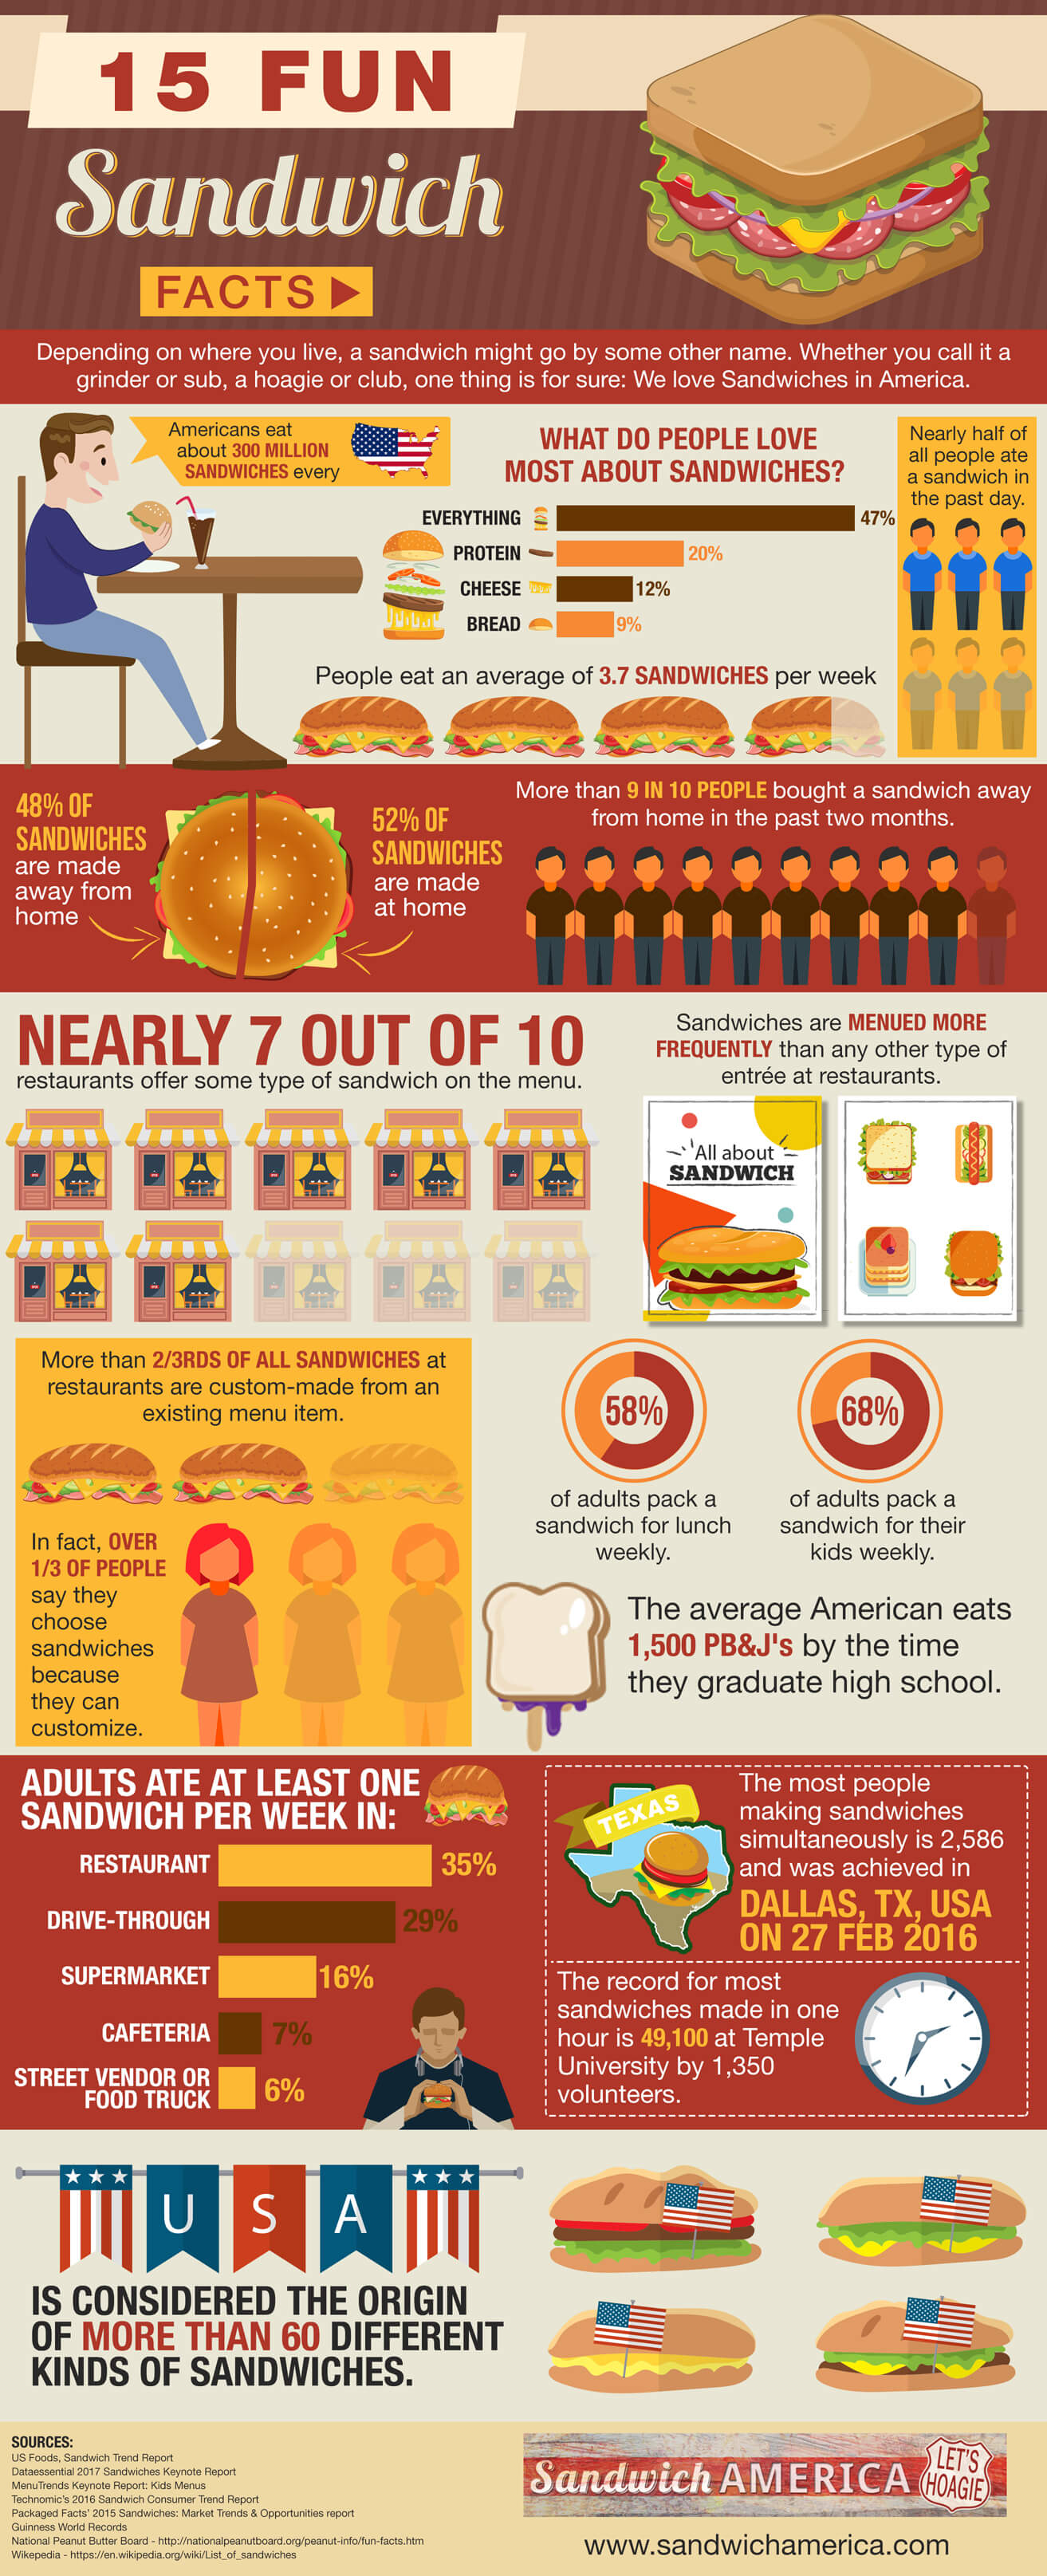 15 Fun Sandwich Facts